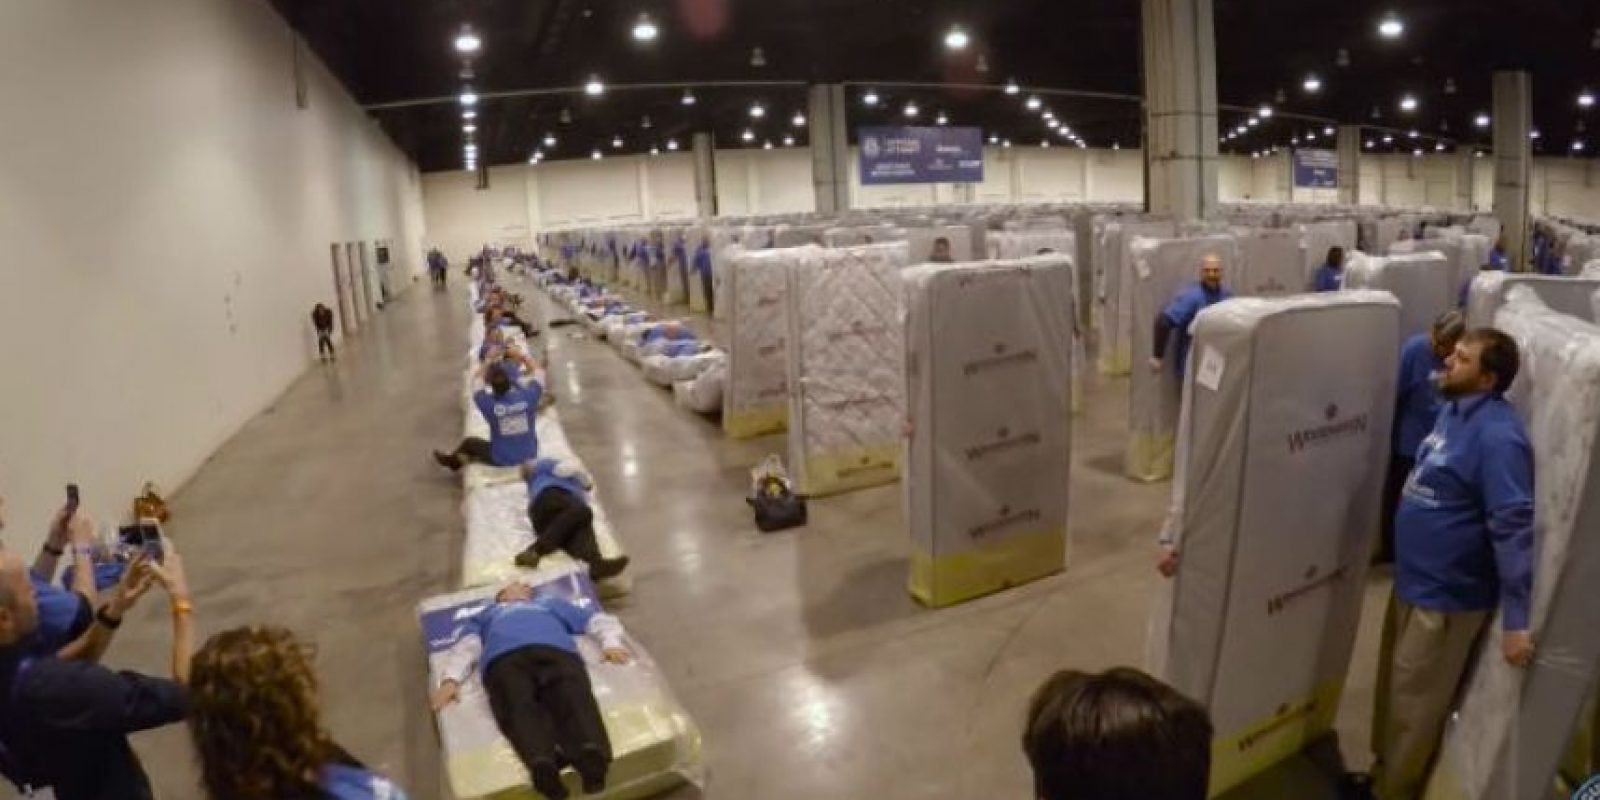 En total hubo 34 filas de colchones de la marca Woodhaven Industries. Foto: Youtube/Guinness World Records. Imagen Por: